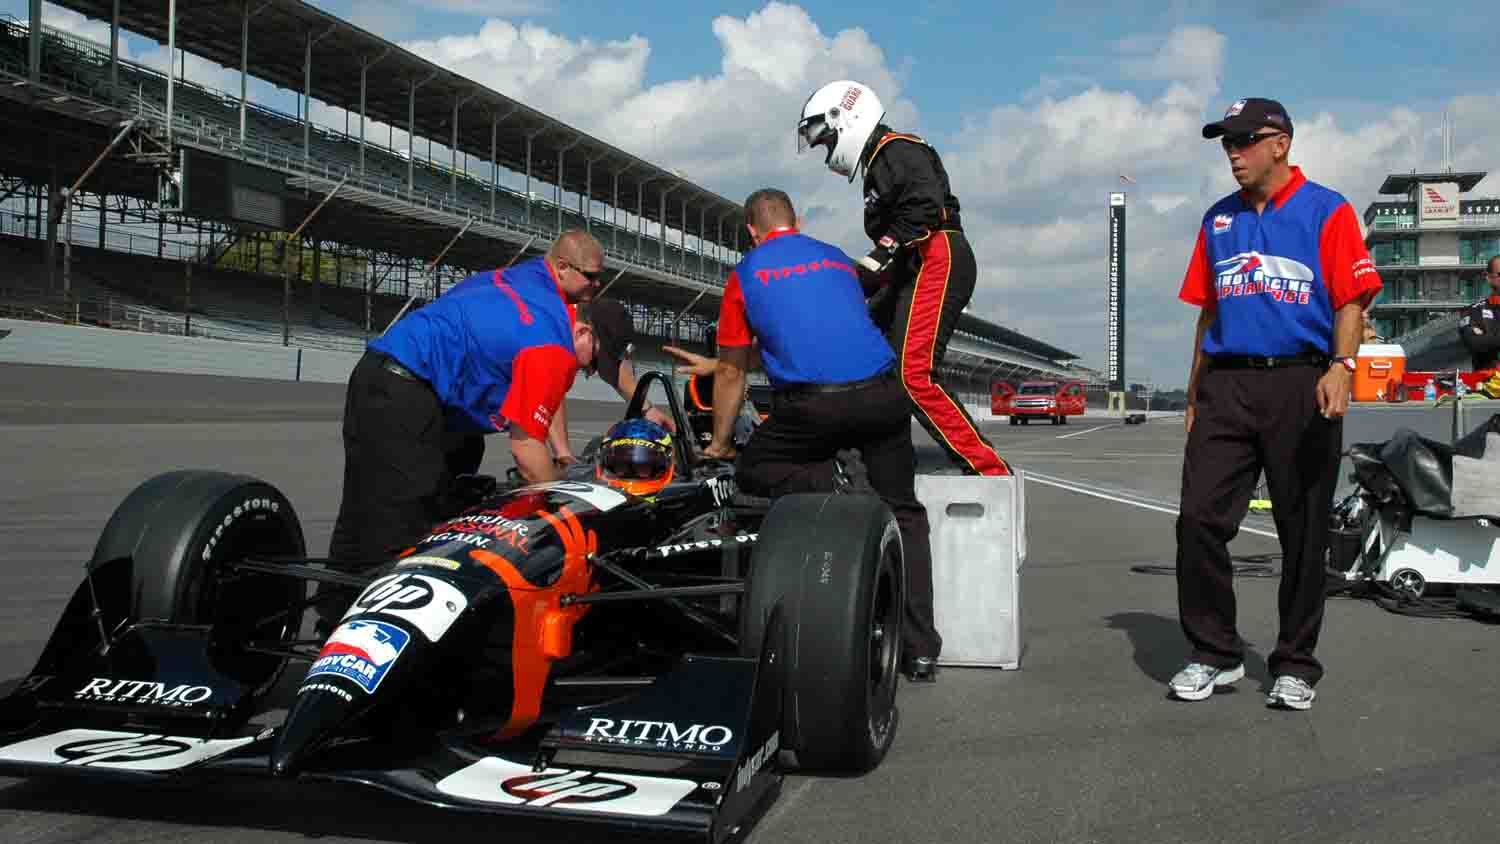 Indy racing experience 1